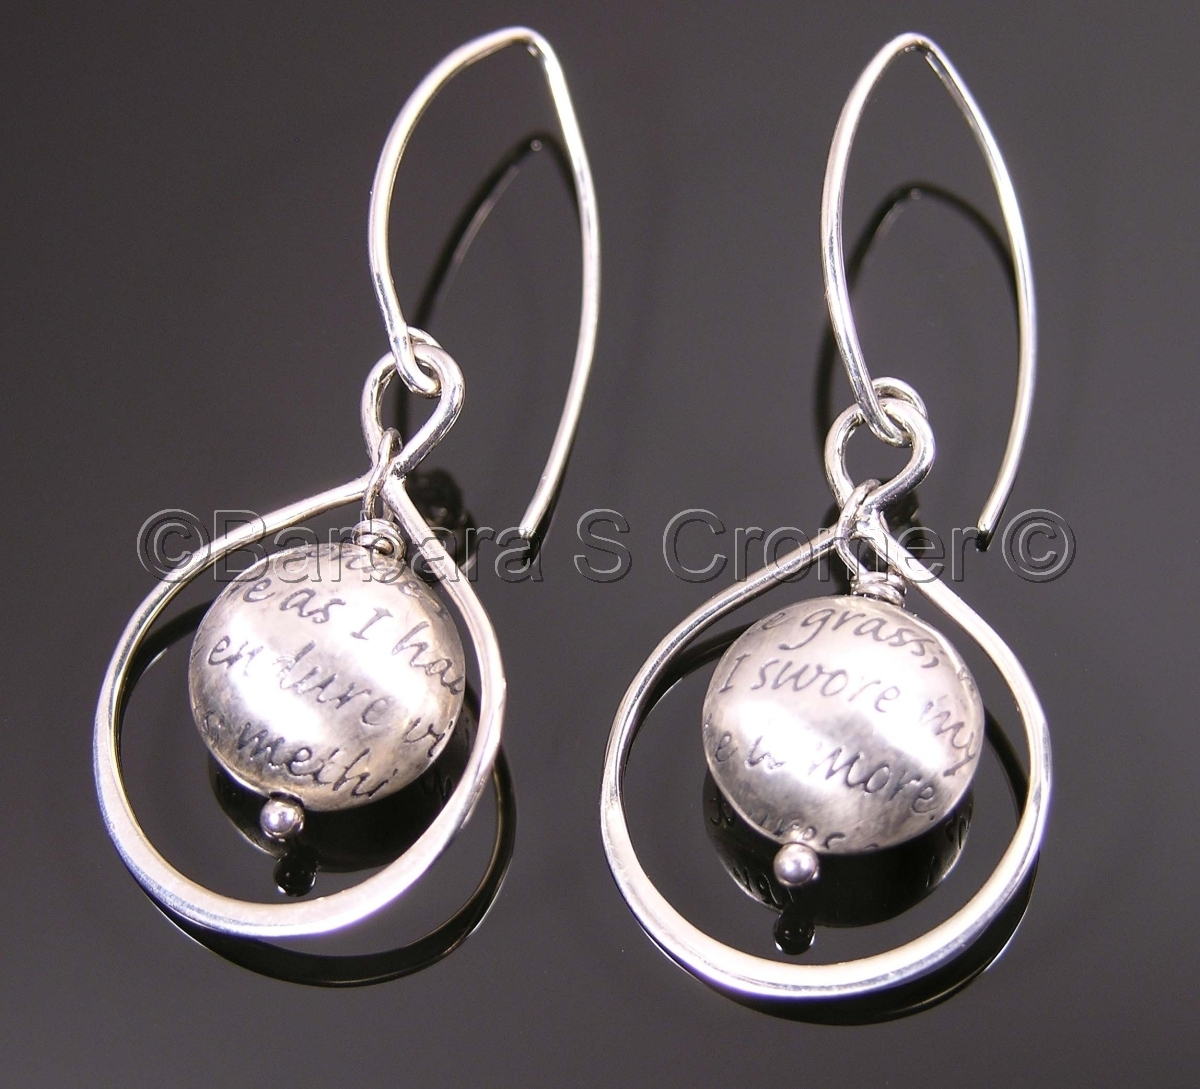 engraved with a portion of a sonnet by John Donne, Round bead, encircled by handmade Sterling silver shapes and hang from marquise ear wires, 2 inches (large view)